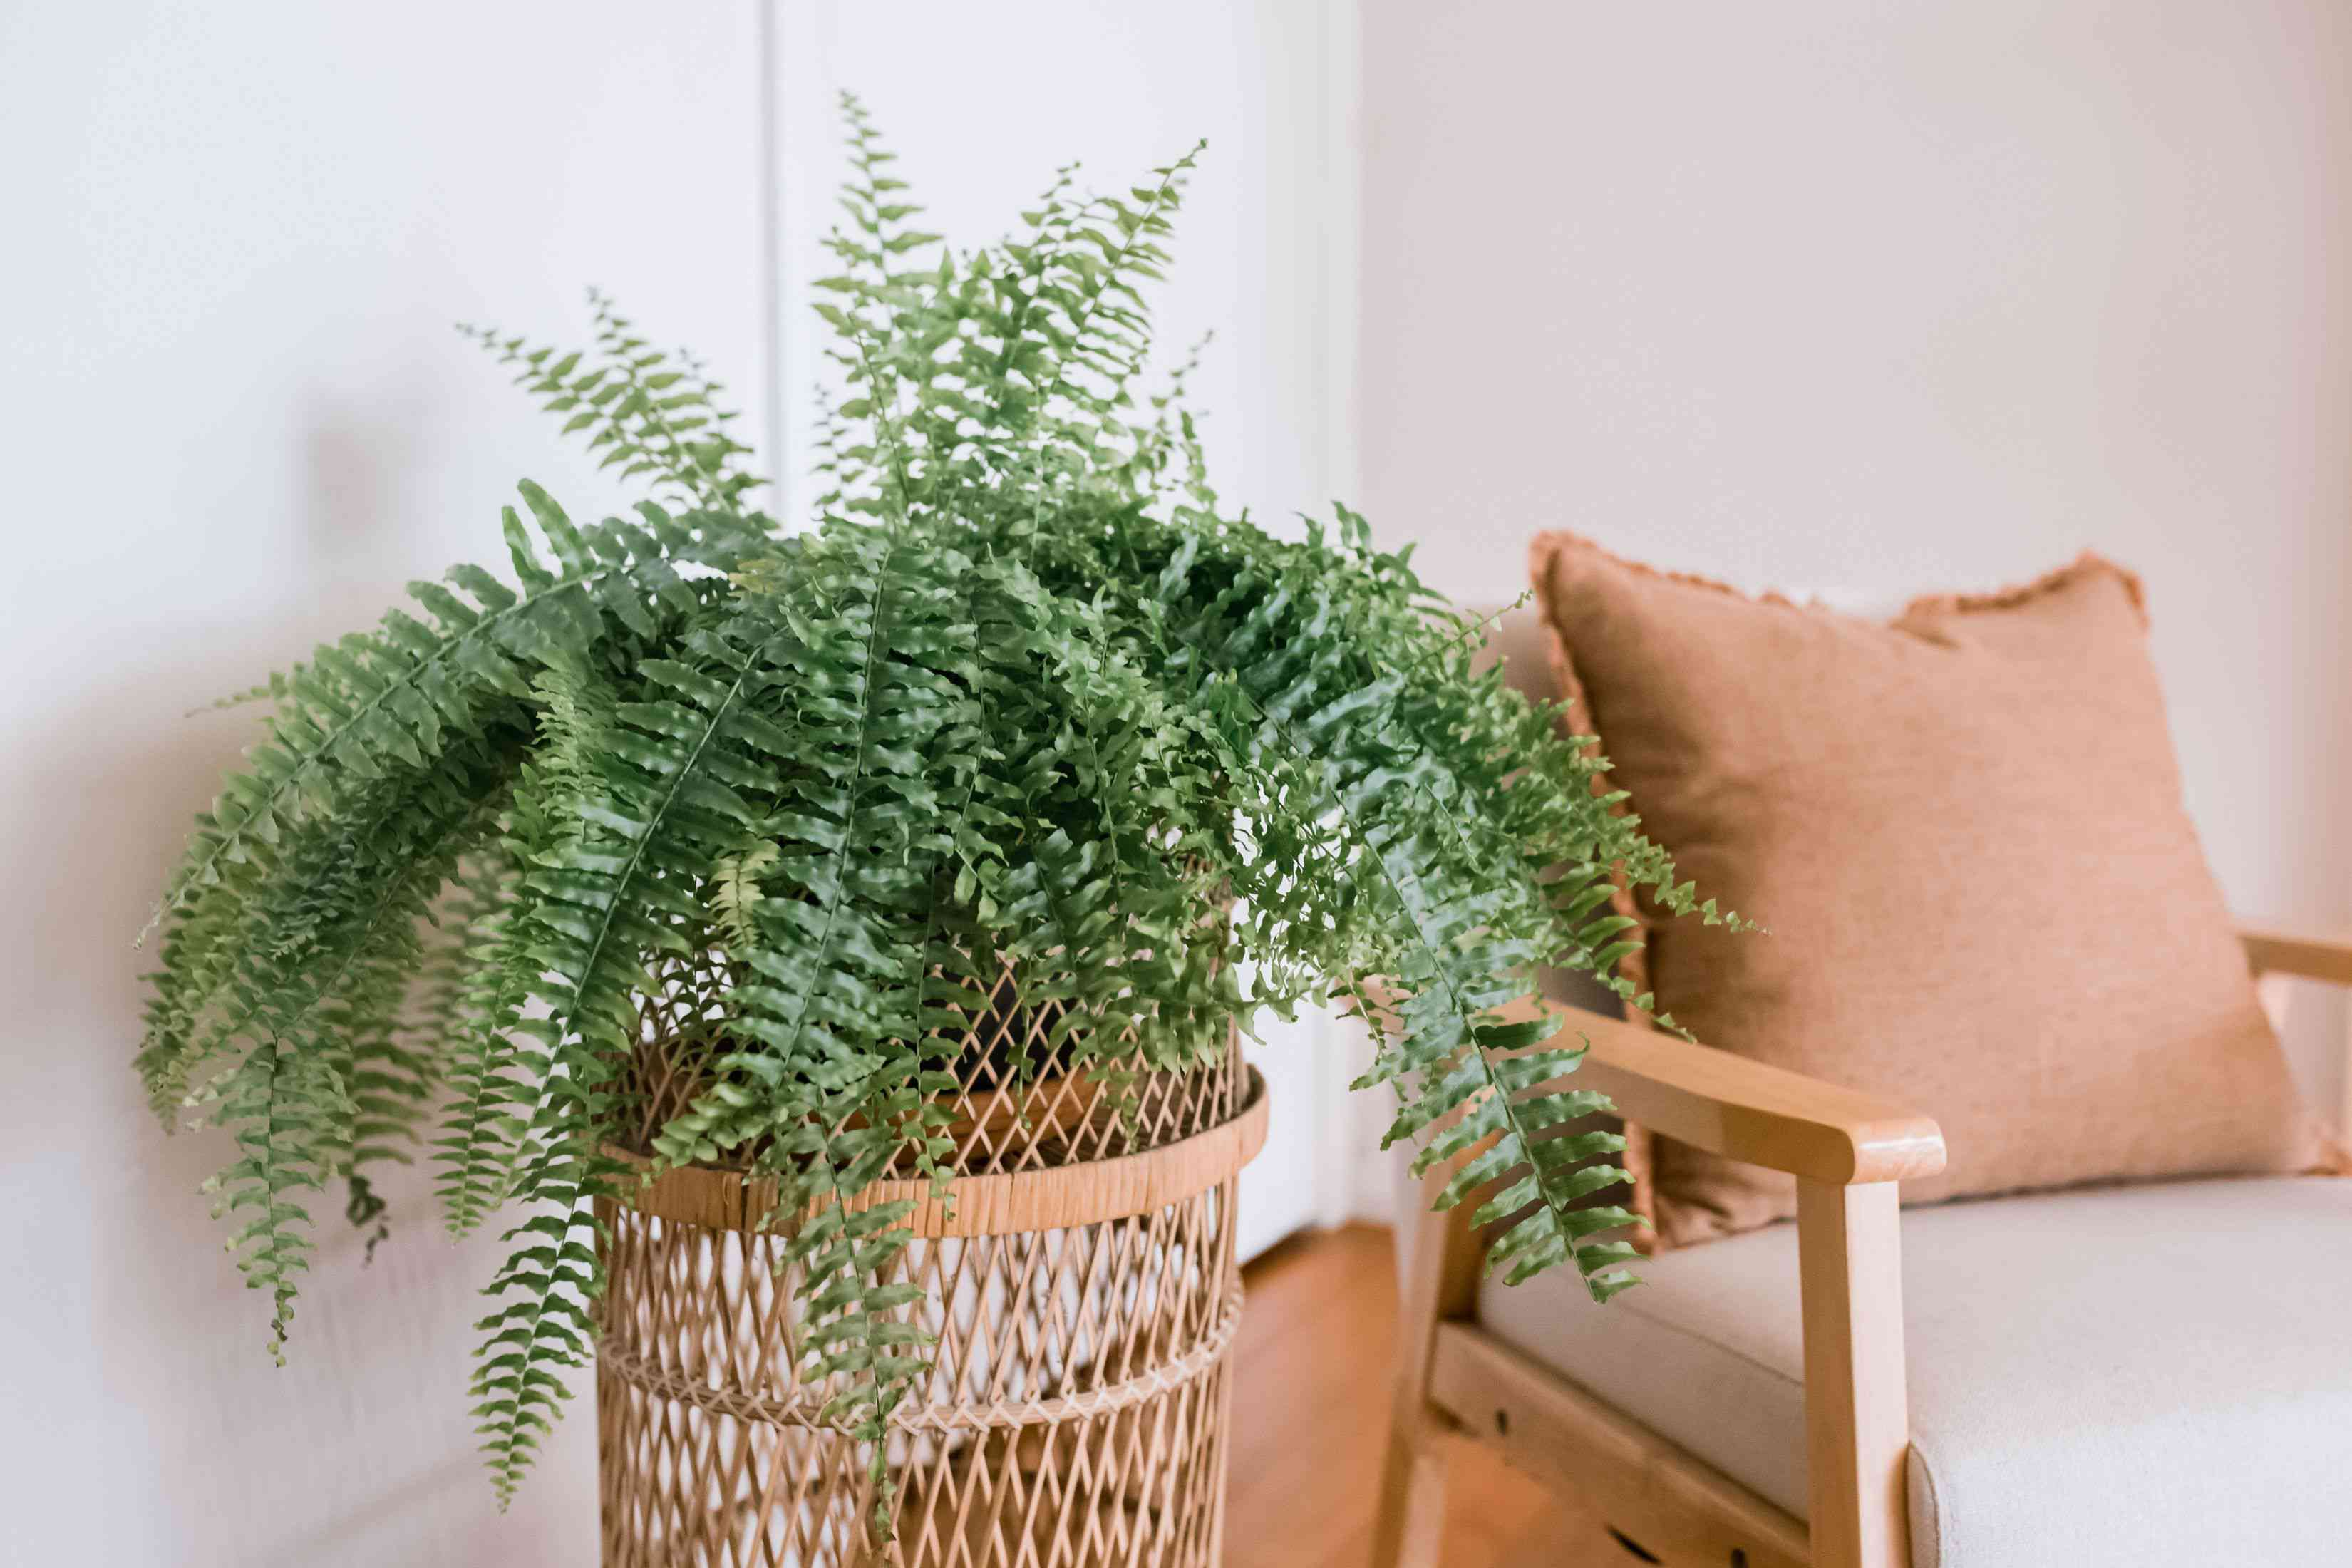 Potted fern plant growing in wicker plant stand next to chair with toss pilow